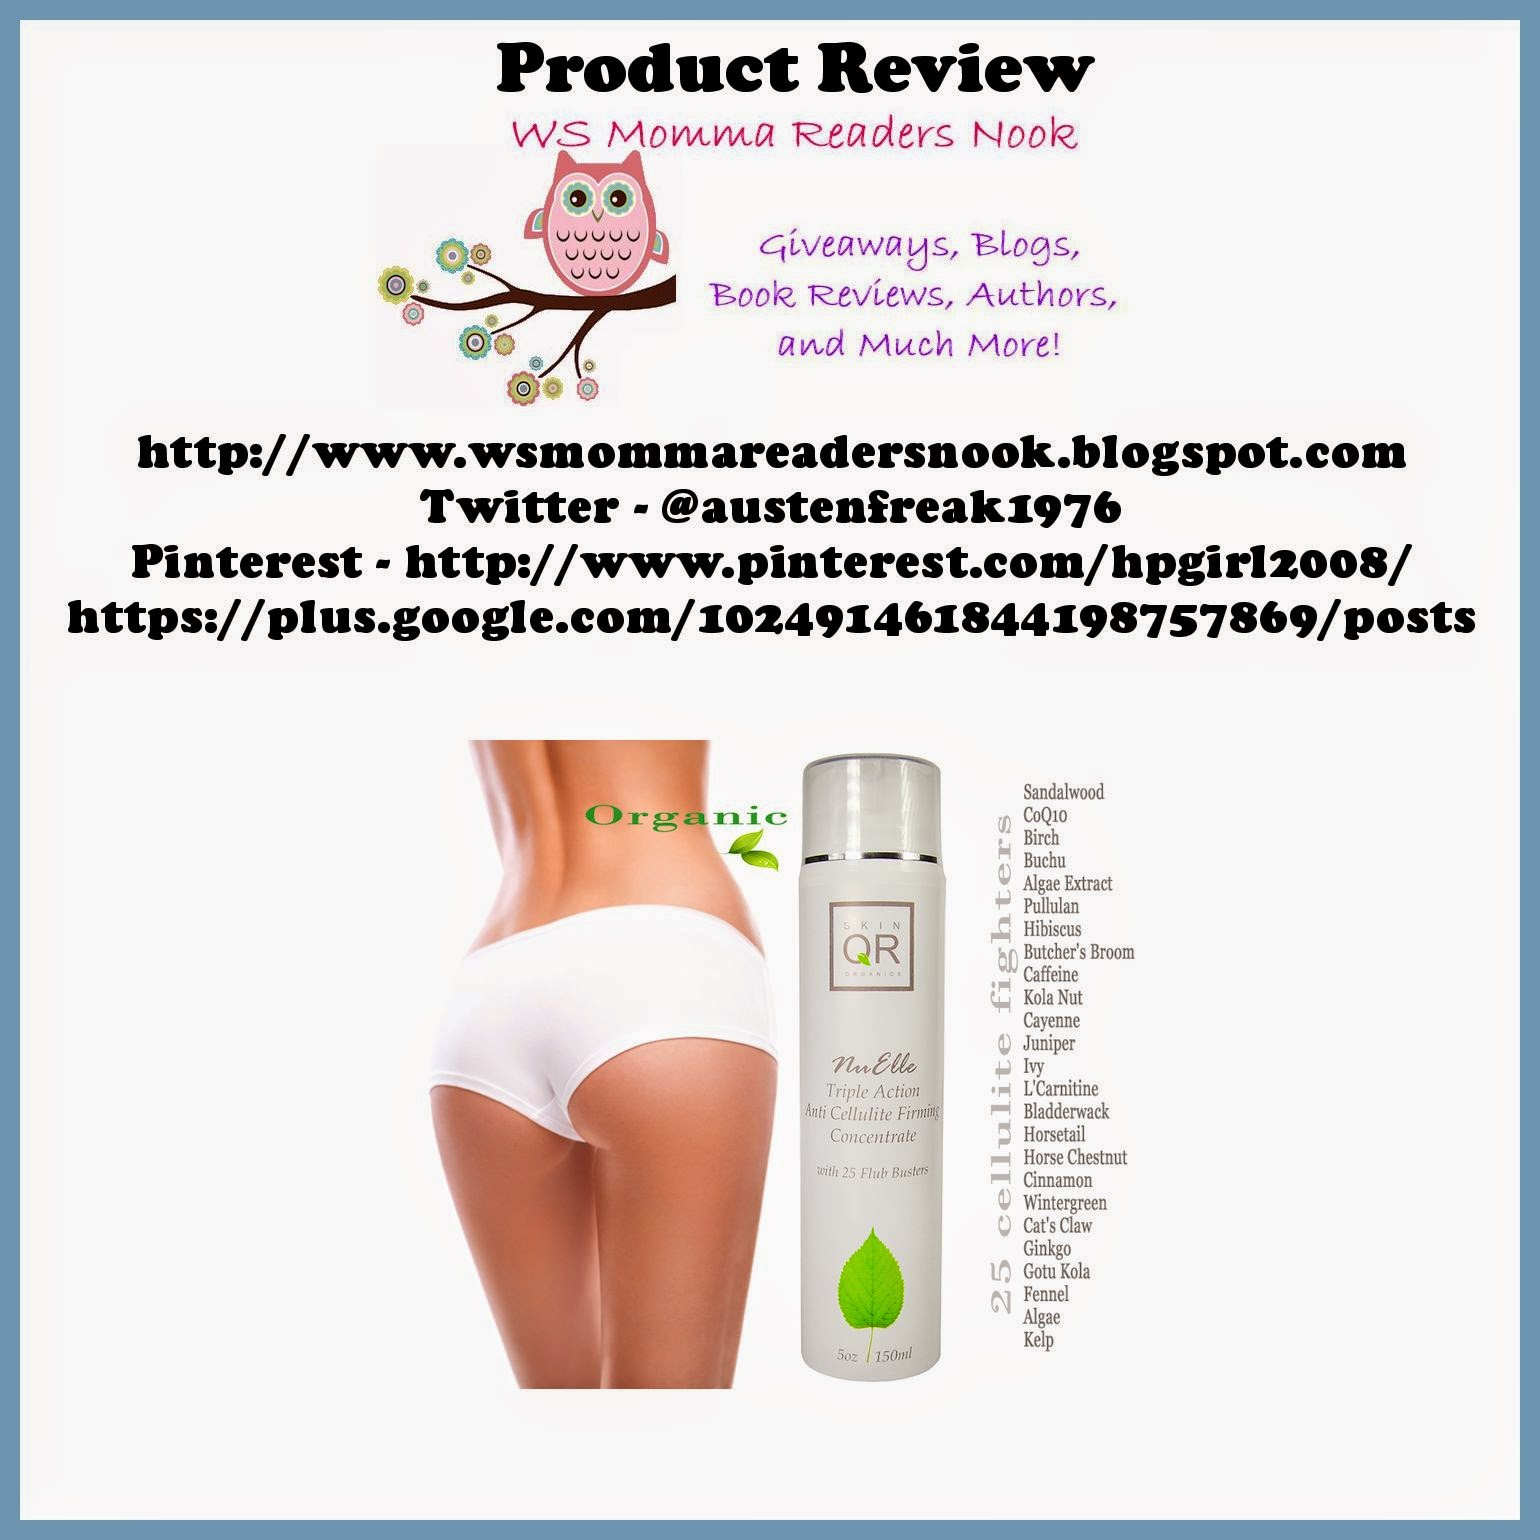 http://www.amazon.com/Cellulite-Concentrate-Caffeine-LCarnitine-ingredients/dp/B003UJHSUI/ref=sr_1_1?ie=UTF8&qid=1411803973&sr=8-1&keywords=nuelle+triple+action+anti+cellulite+concentrate